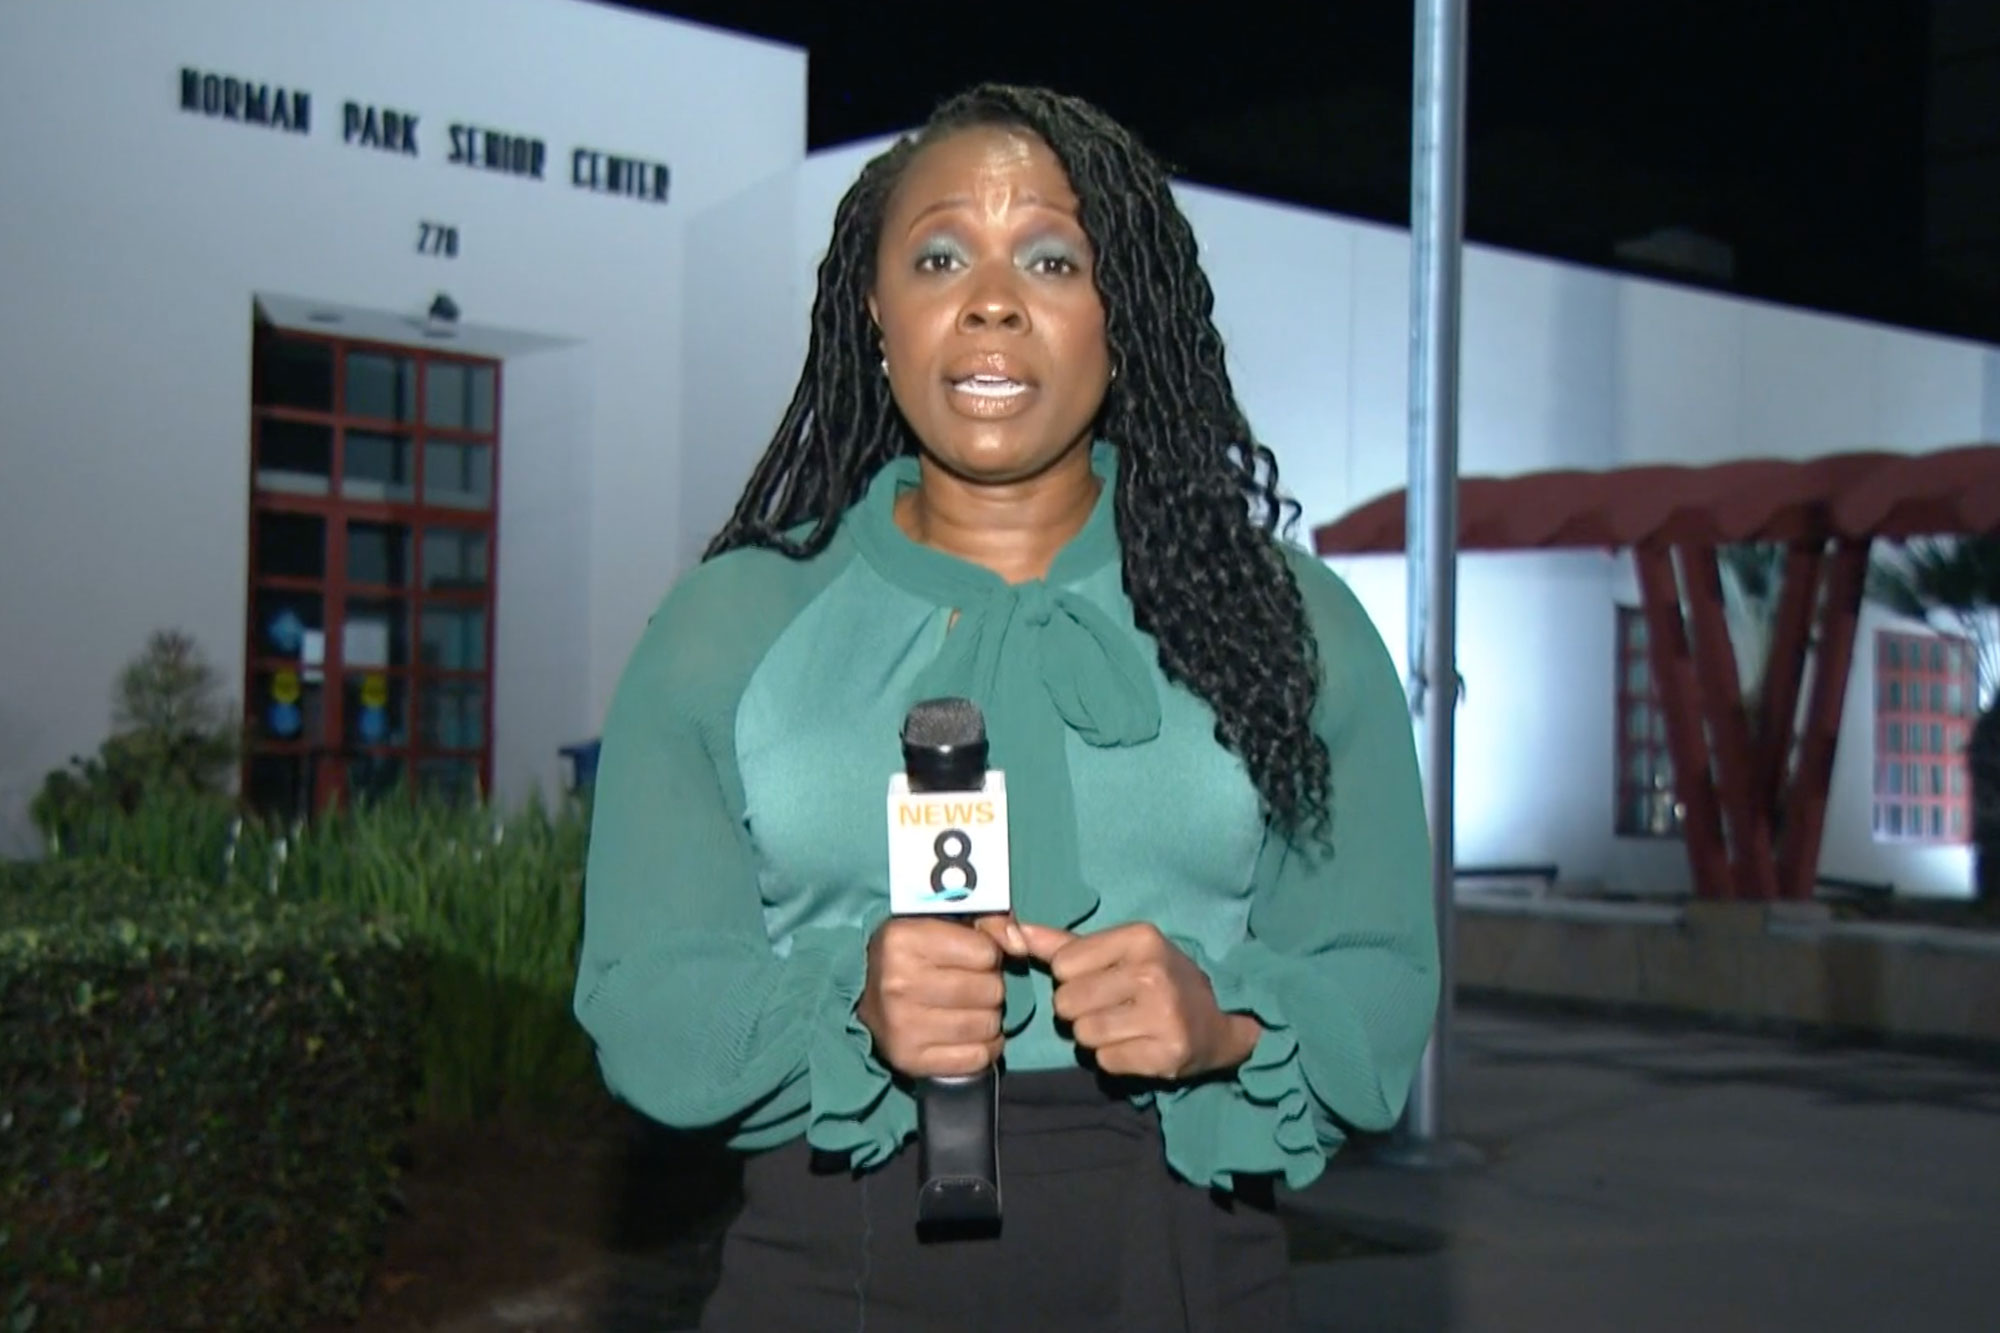 LaMonica Peters stands in front of the Norman Park Senior Center in Chula Vista